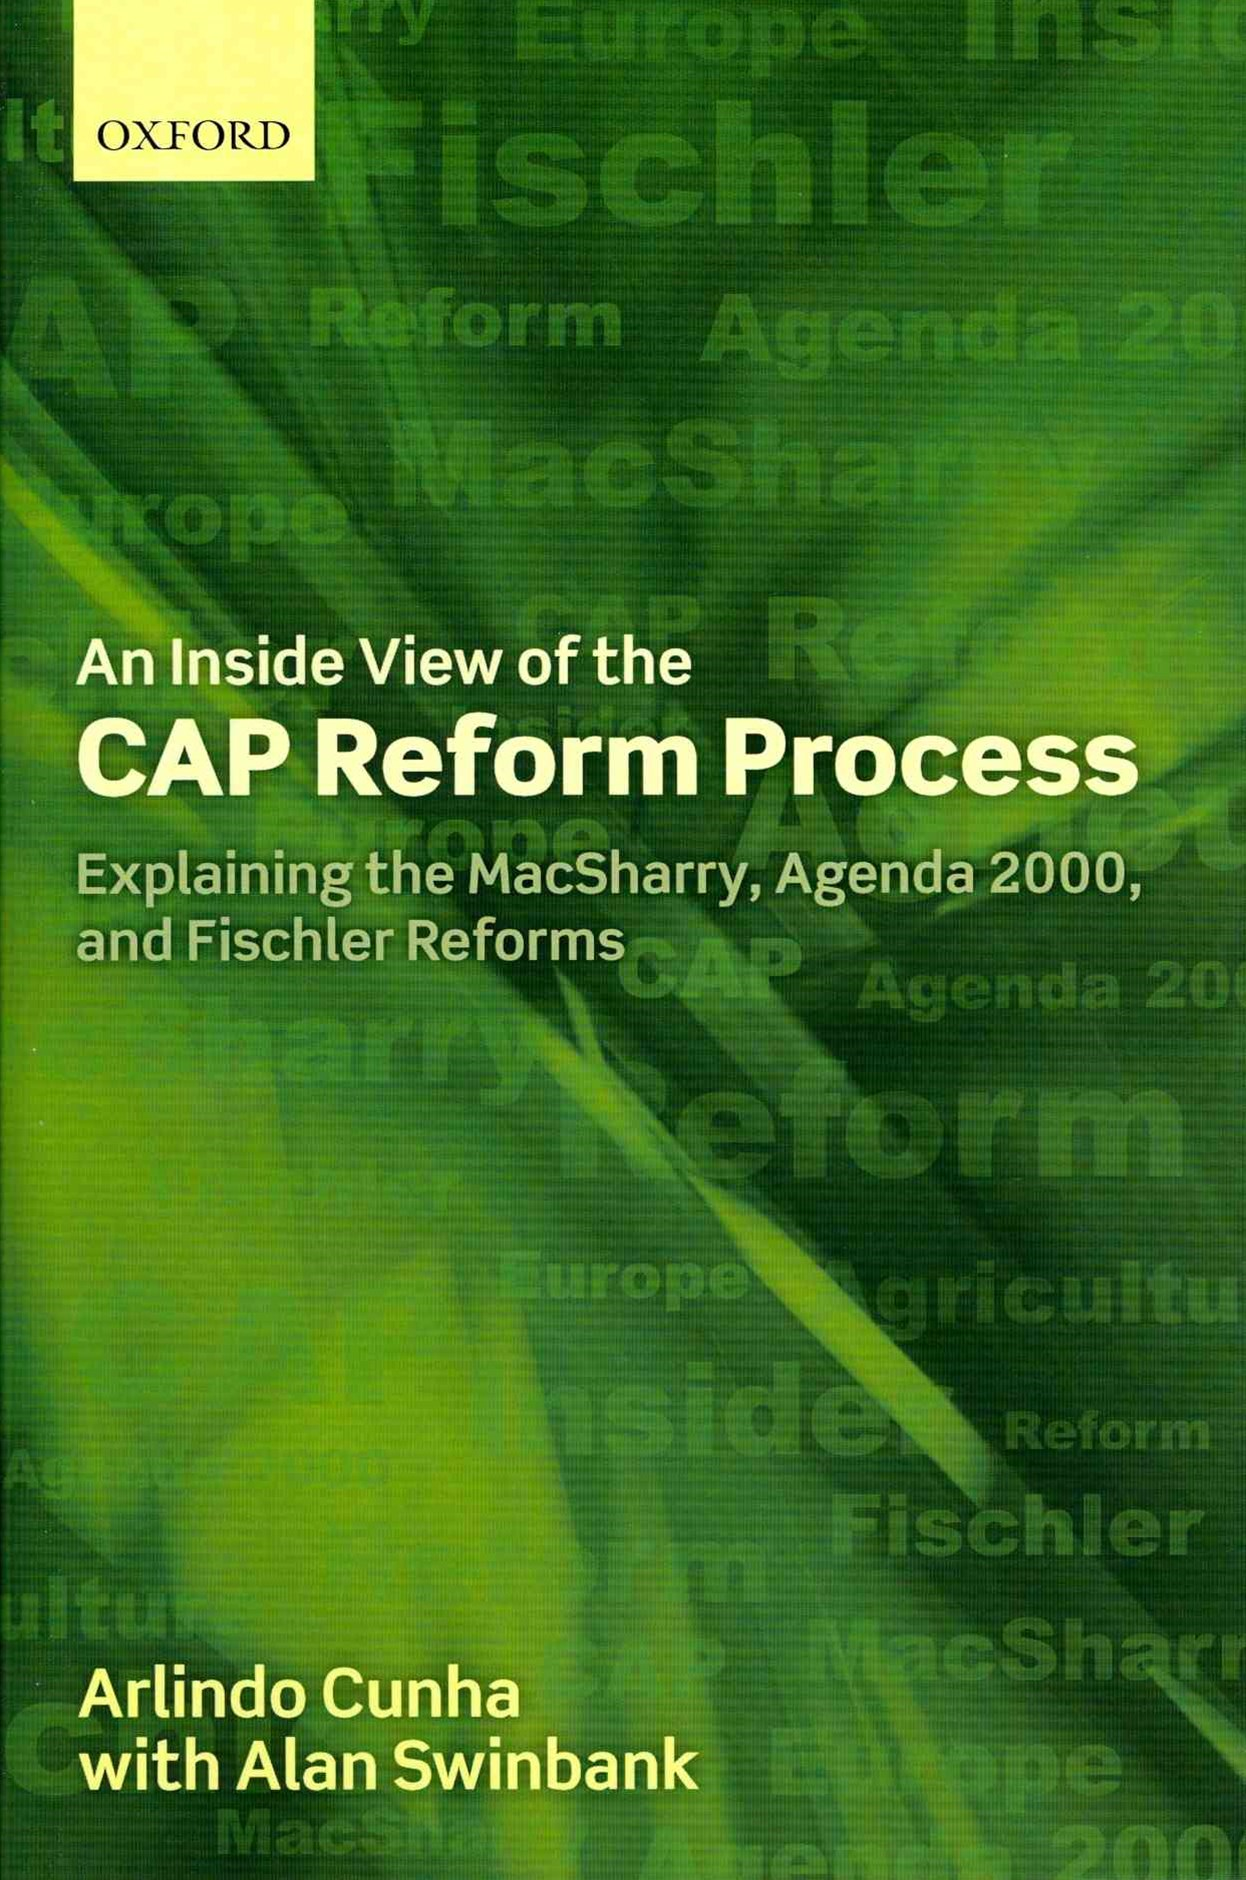 An Inside View of the CAP Reform Process